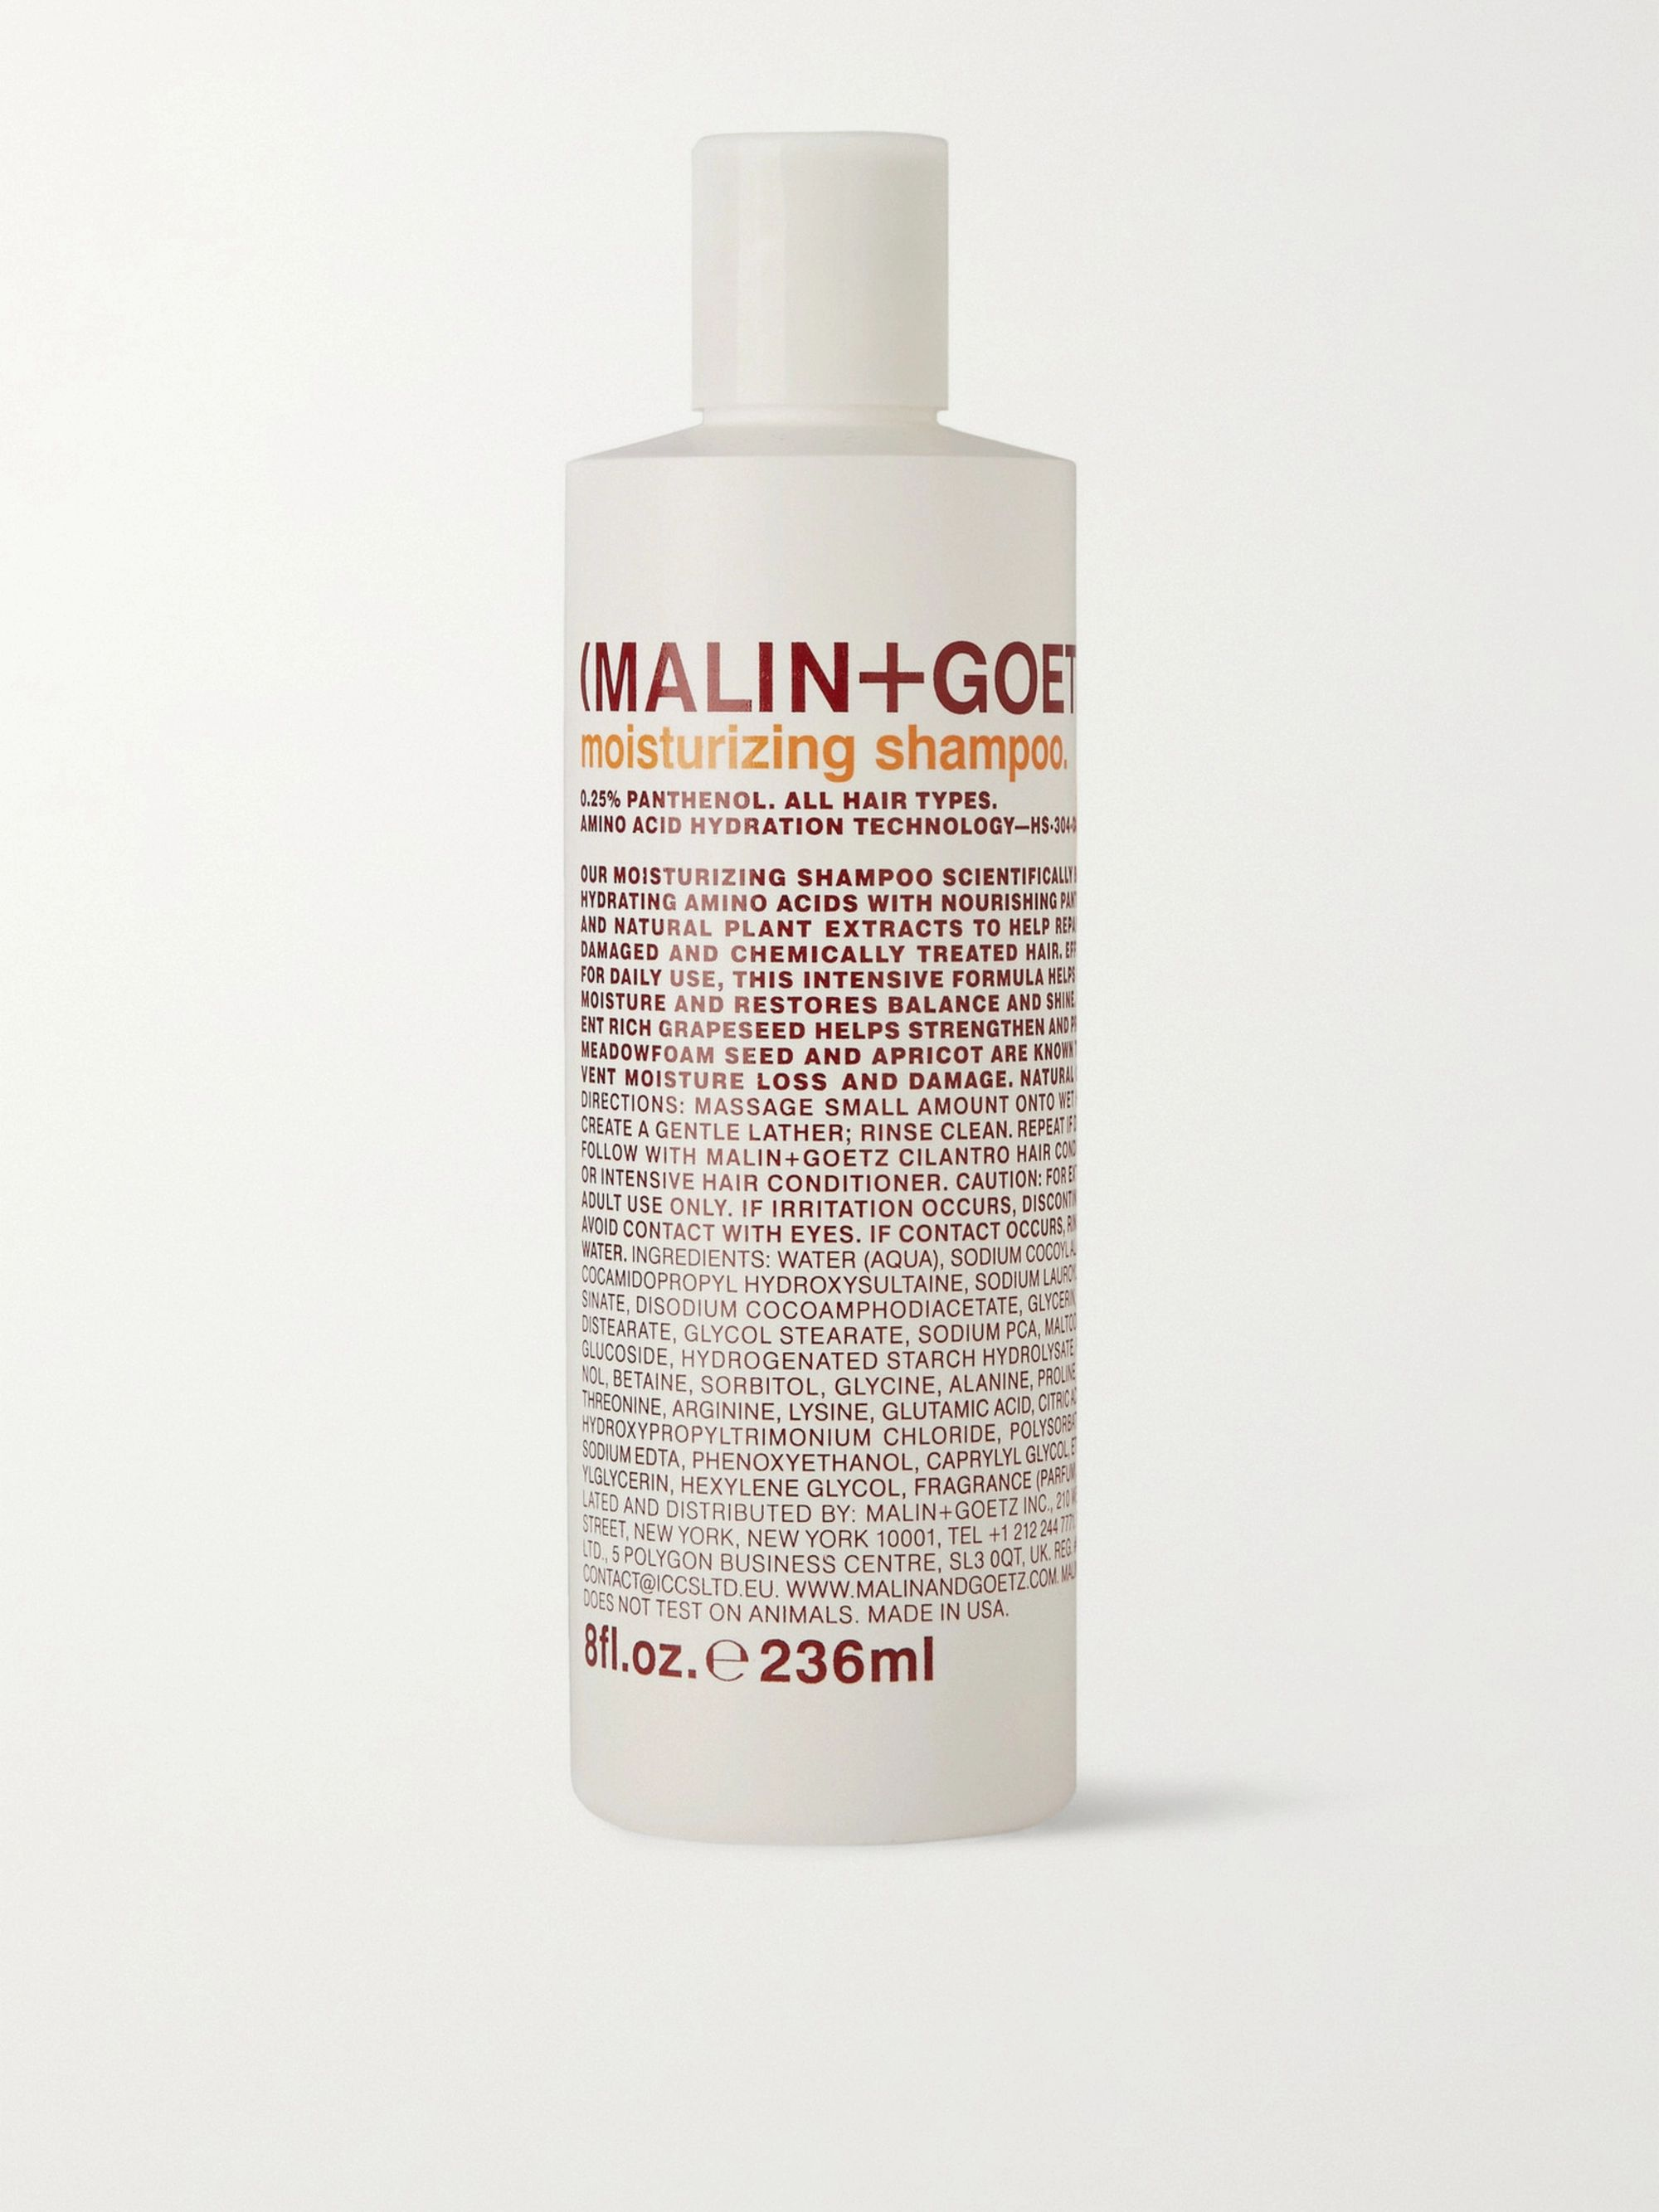 Malin + Goetz Moisturizing Shampoo, 236ml